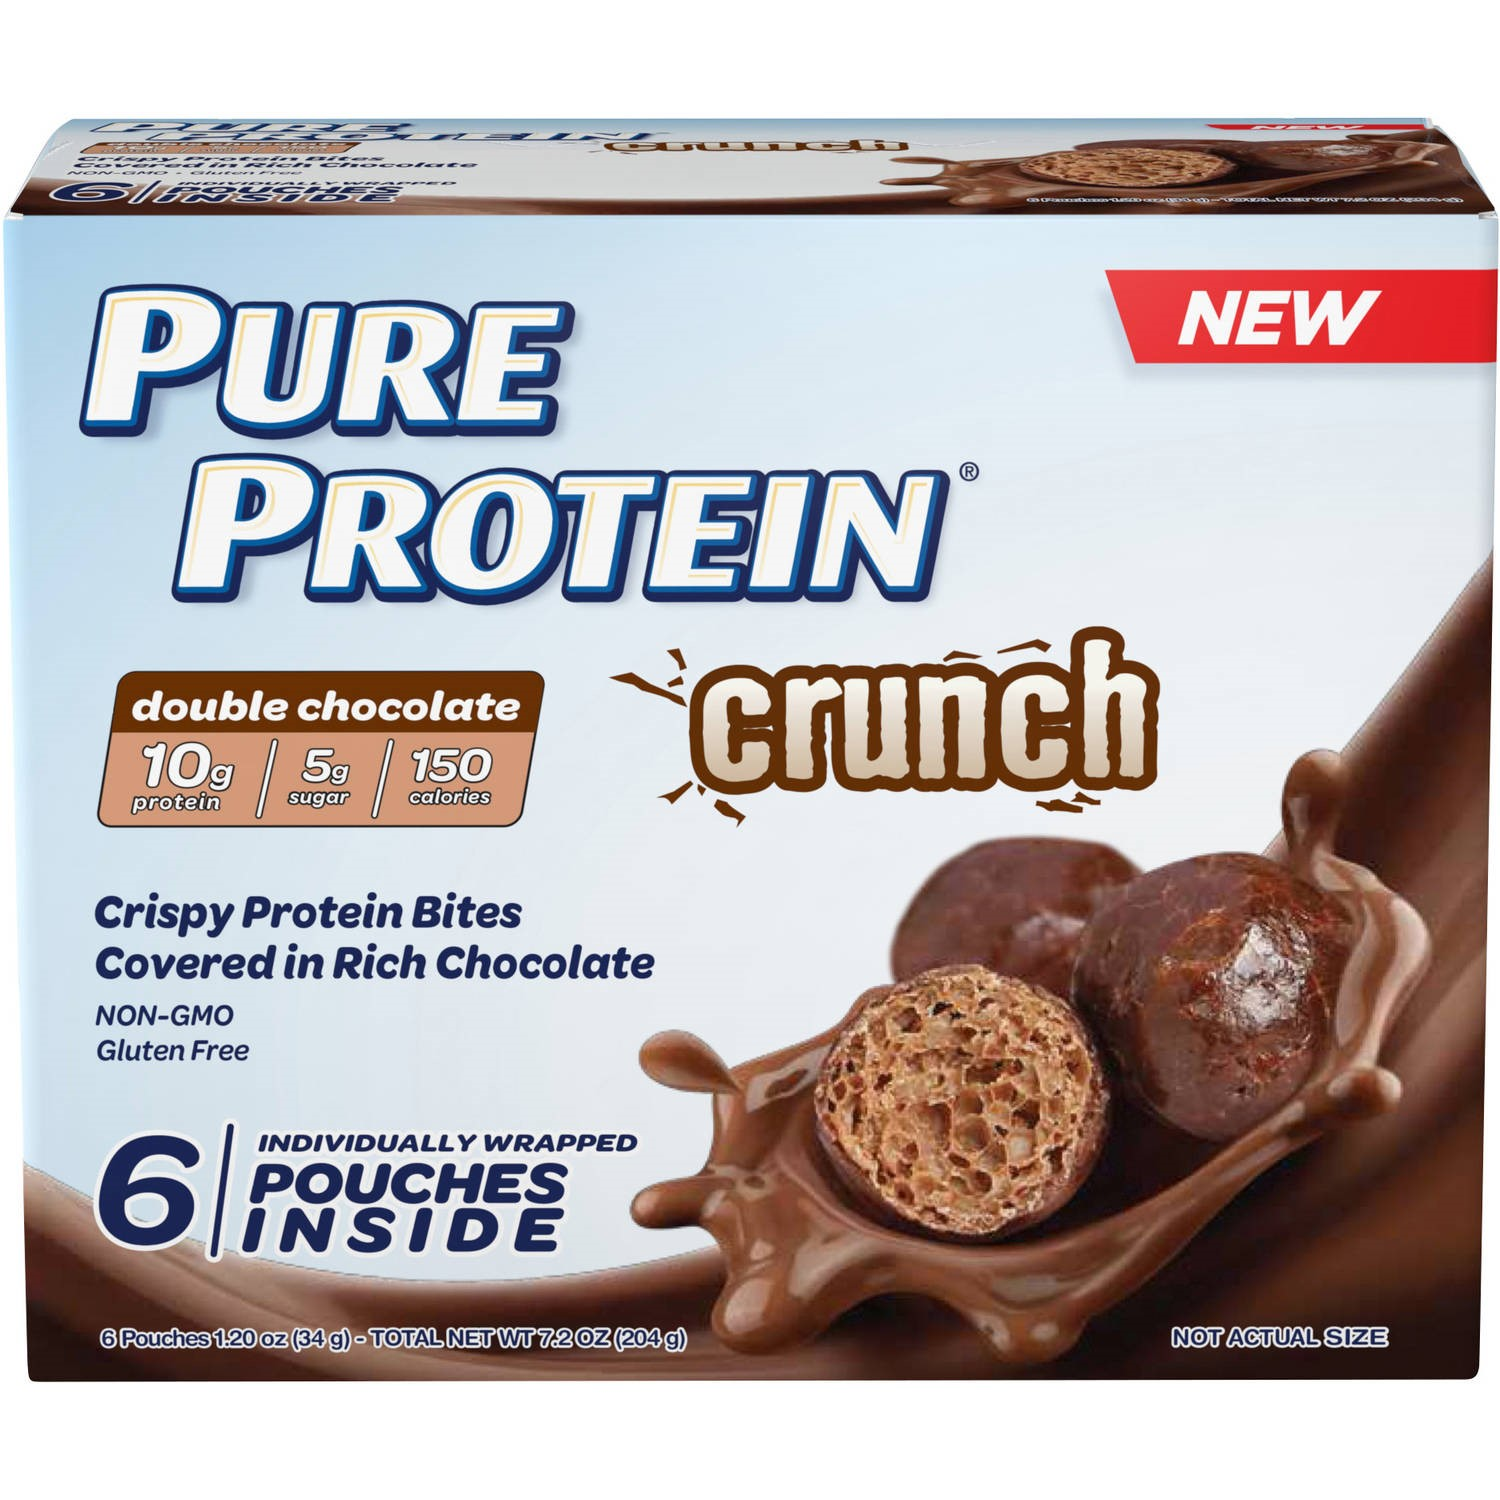 Pure Protein Crunch Bites, 10 Grams of Protein, Double Chocolate, 1.2 Oz, 6 Ct